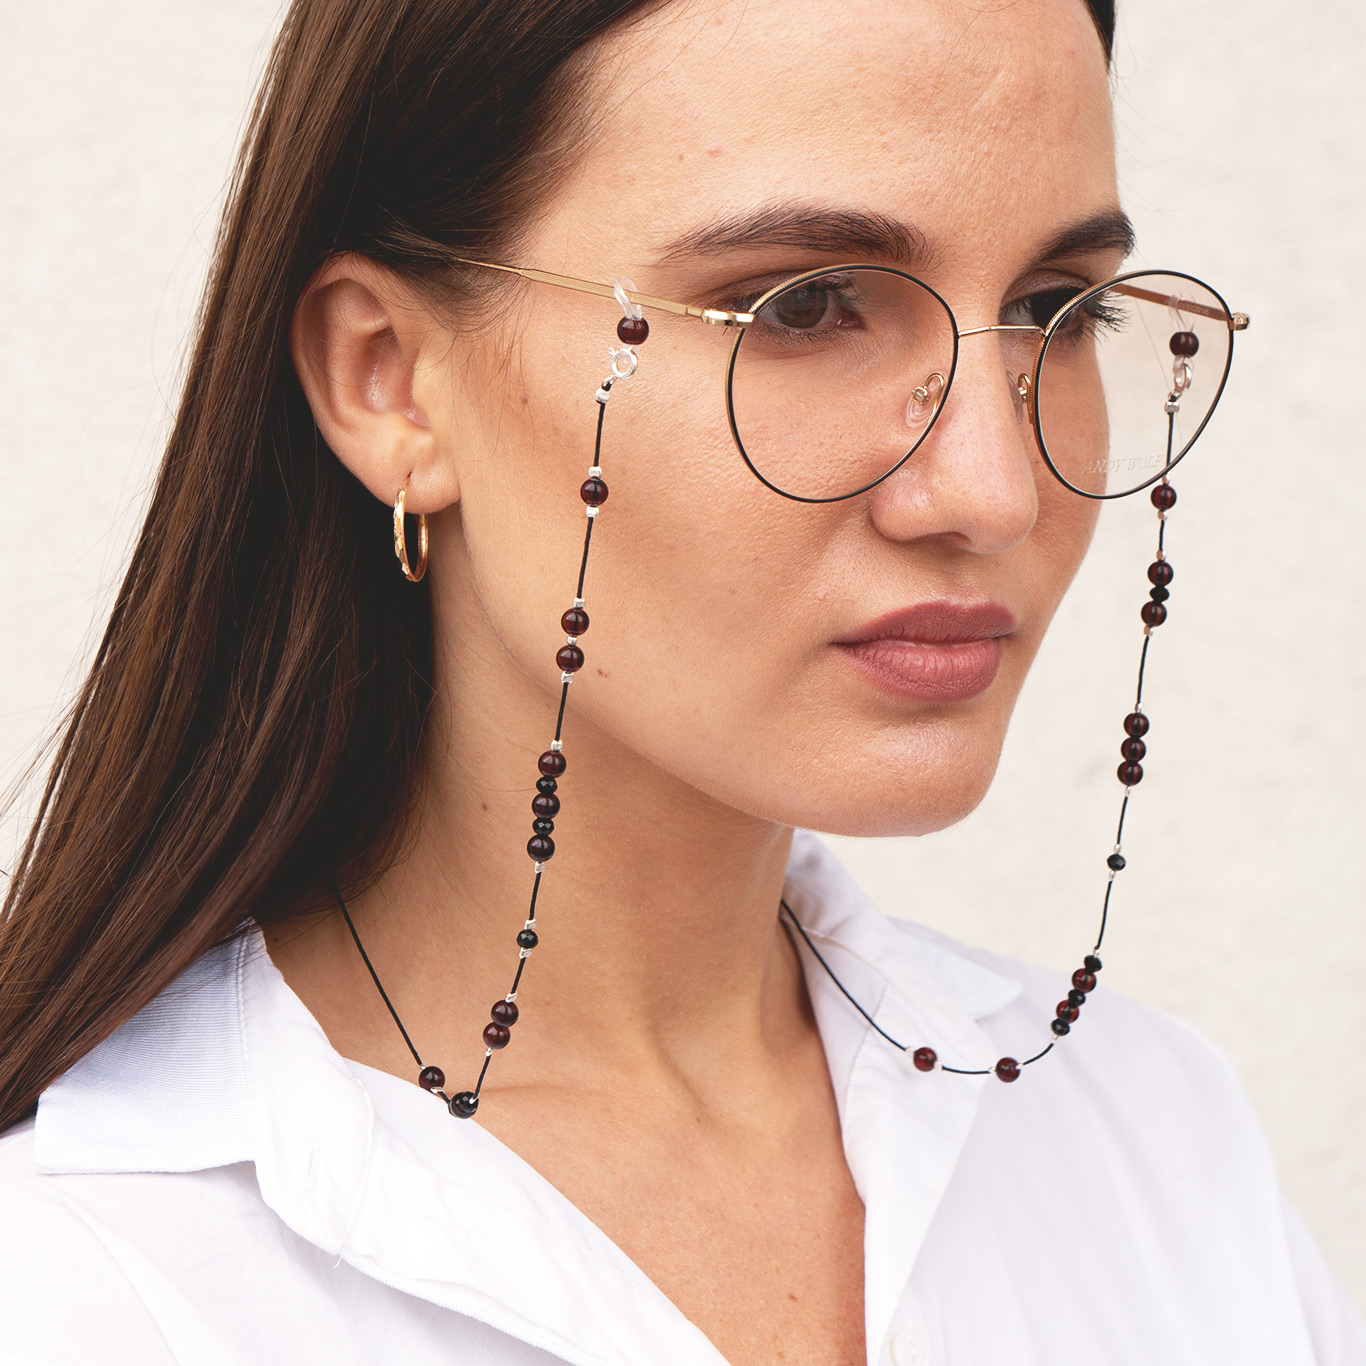 eyeglasse-necklace-4